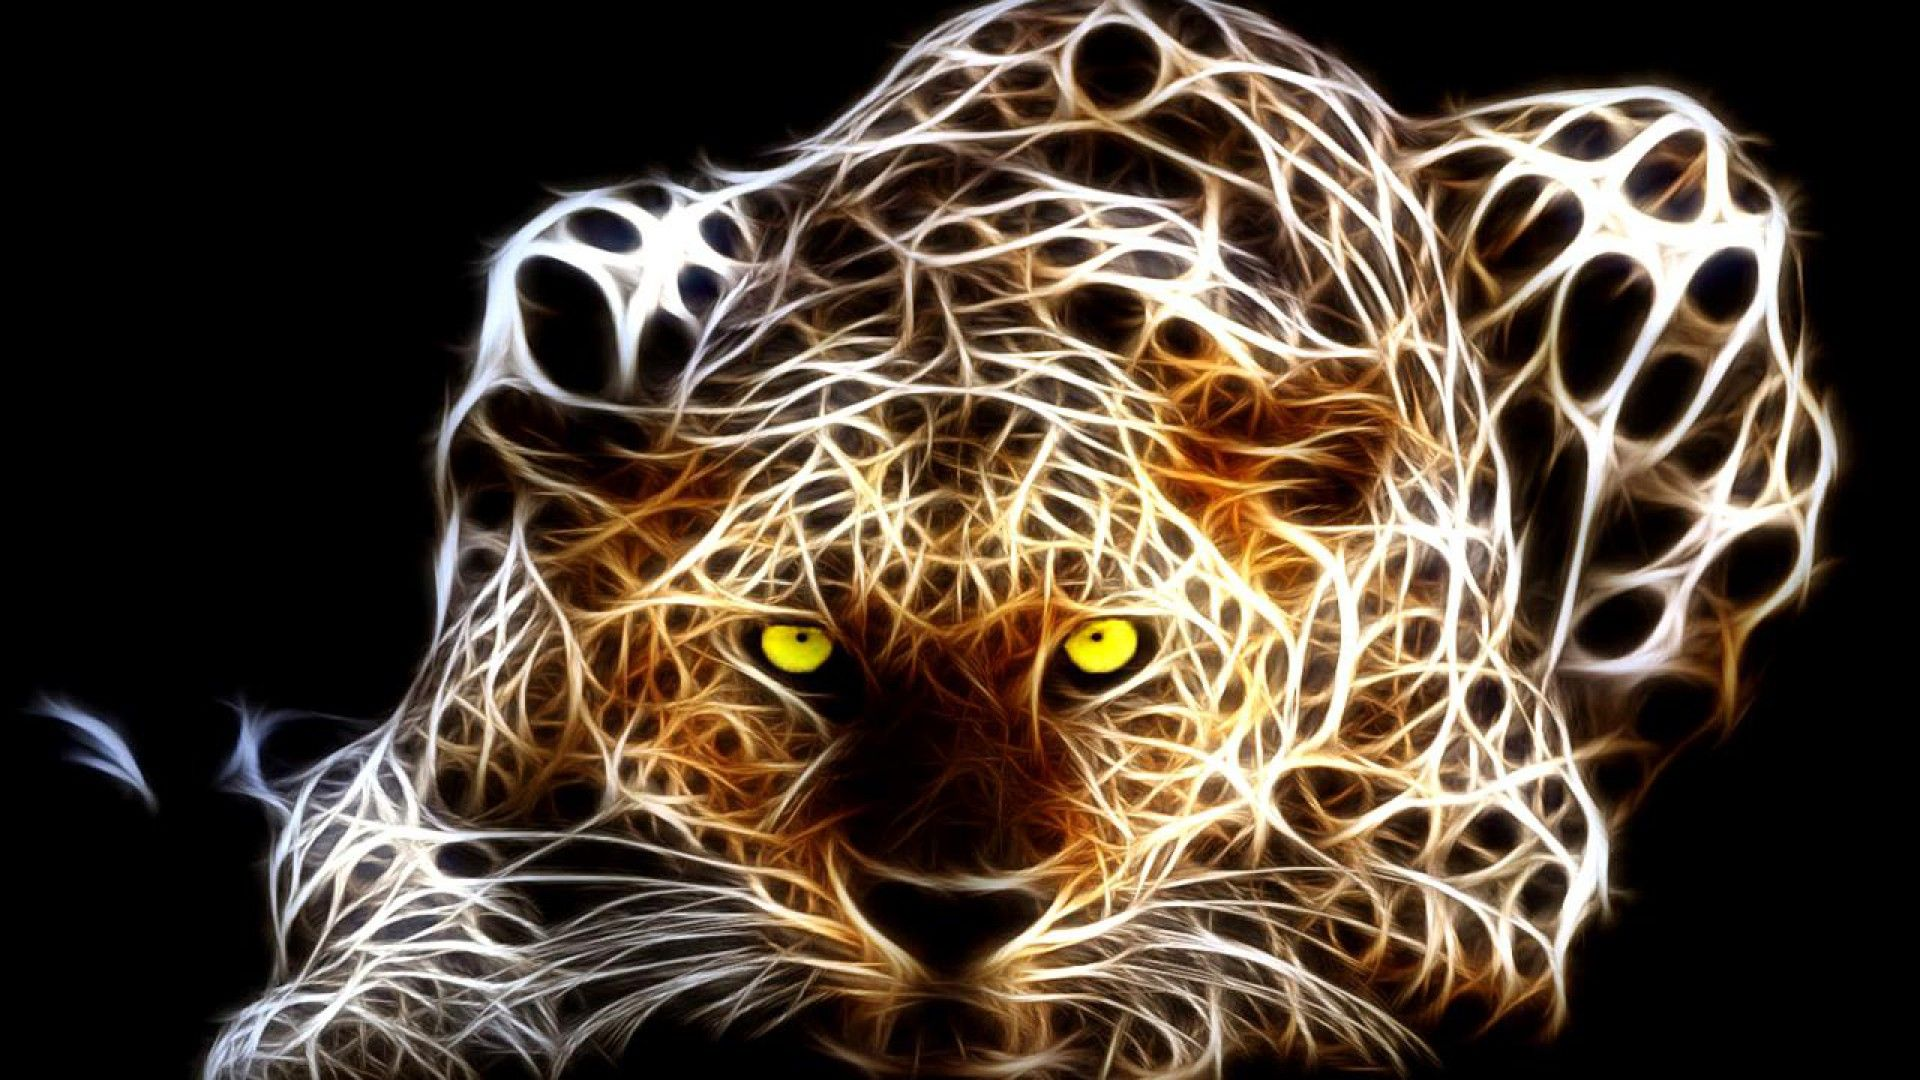 3d digital art wallpaper miscellaneous digital art tiger wallpaper 3d digital art wallpaper miscellaneous digital art tiger wallpaper 1920x1080 wallpapers 3d thecheapjerseys Gallery